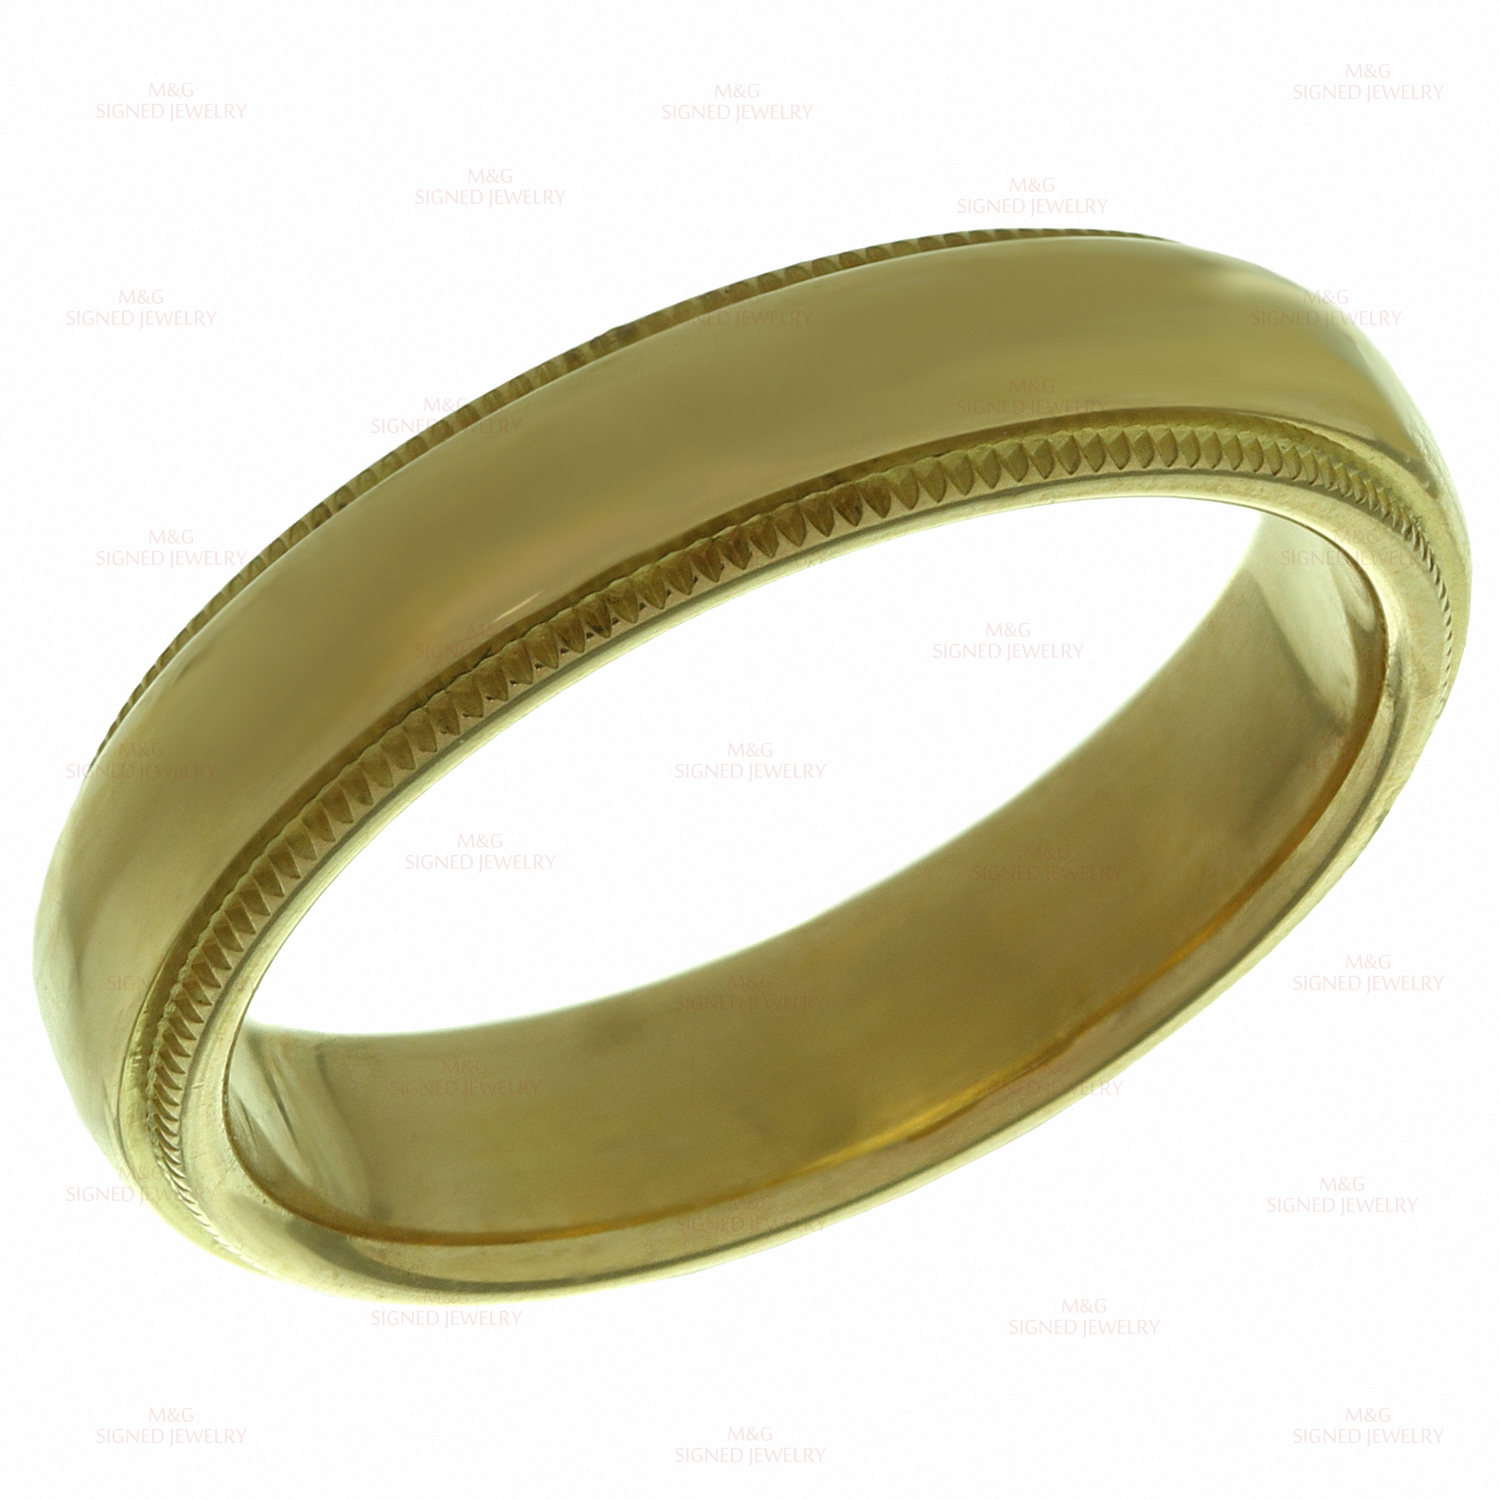 TIFFANY & CO. Milgrain 18k Yellow Gold Wedding Band Ring